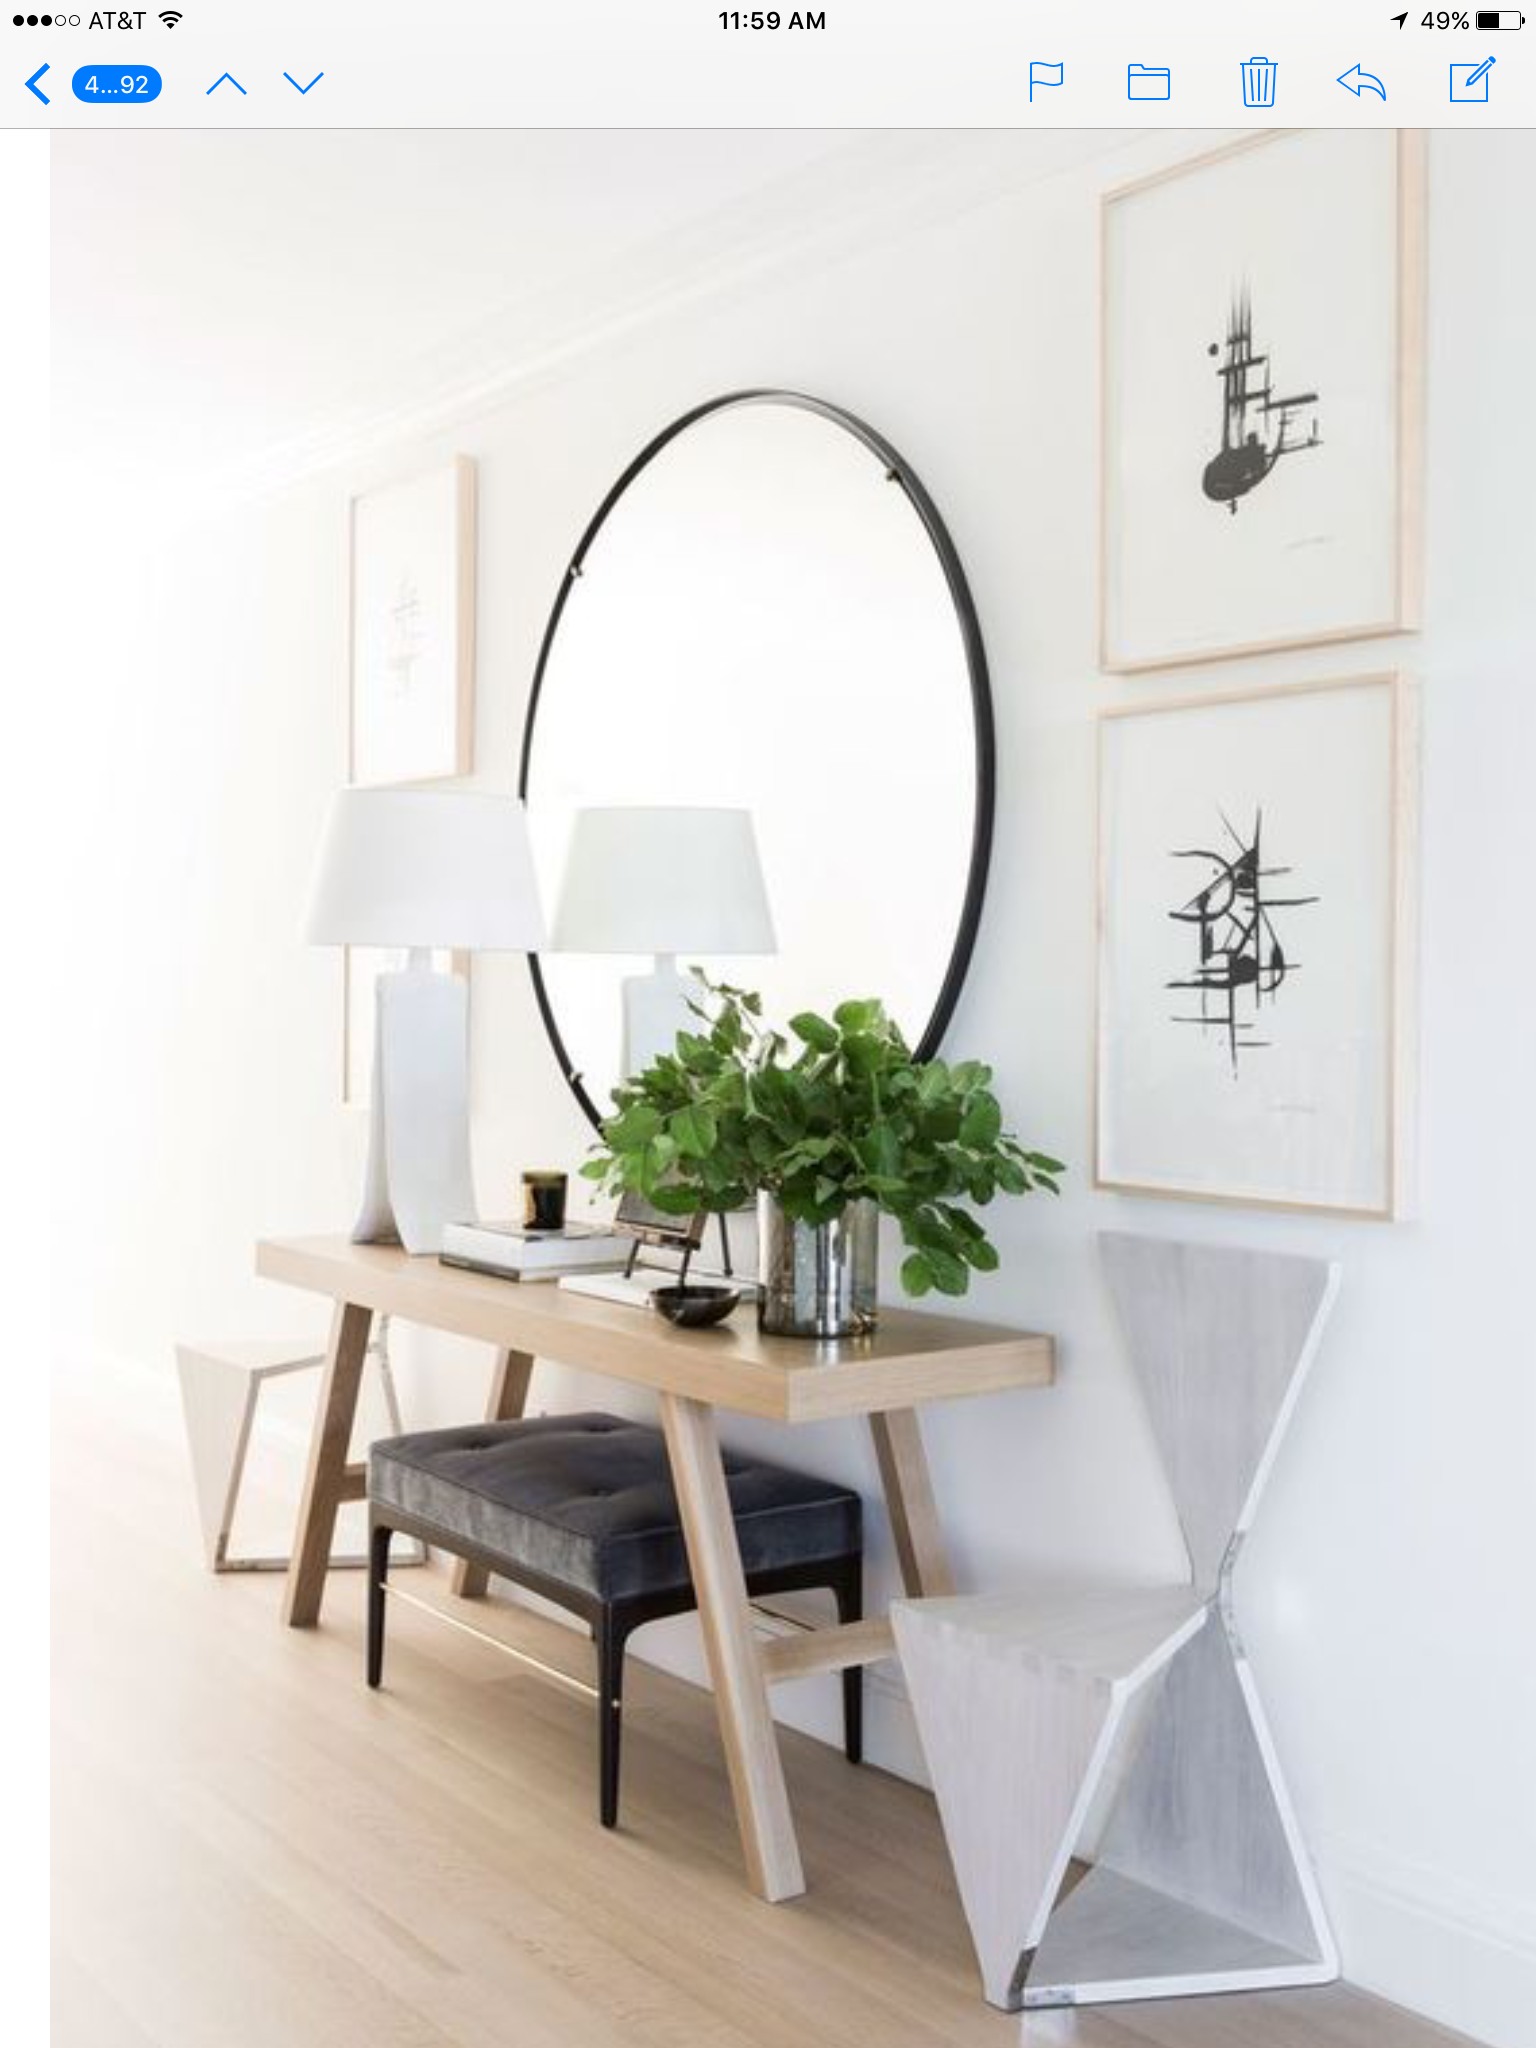 Foyer Minimalist Jobs : Minimalist entryway with oversized round mirror over light